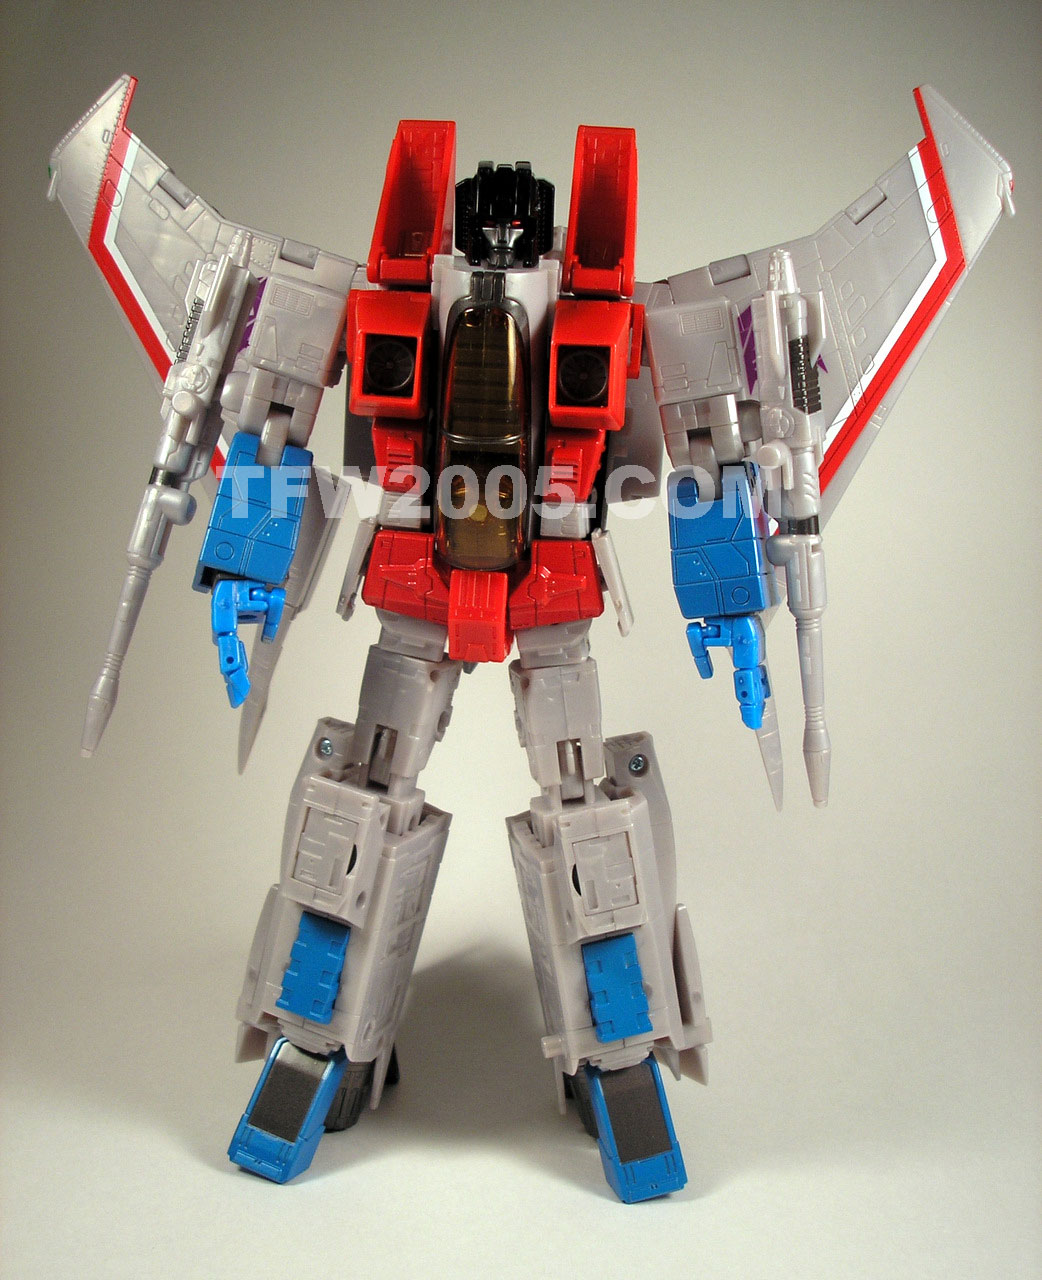 MP11 Masterpiece Starscream V2 Review-mp11-masterpiece-starscream-17.jpg